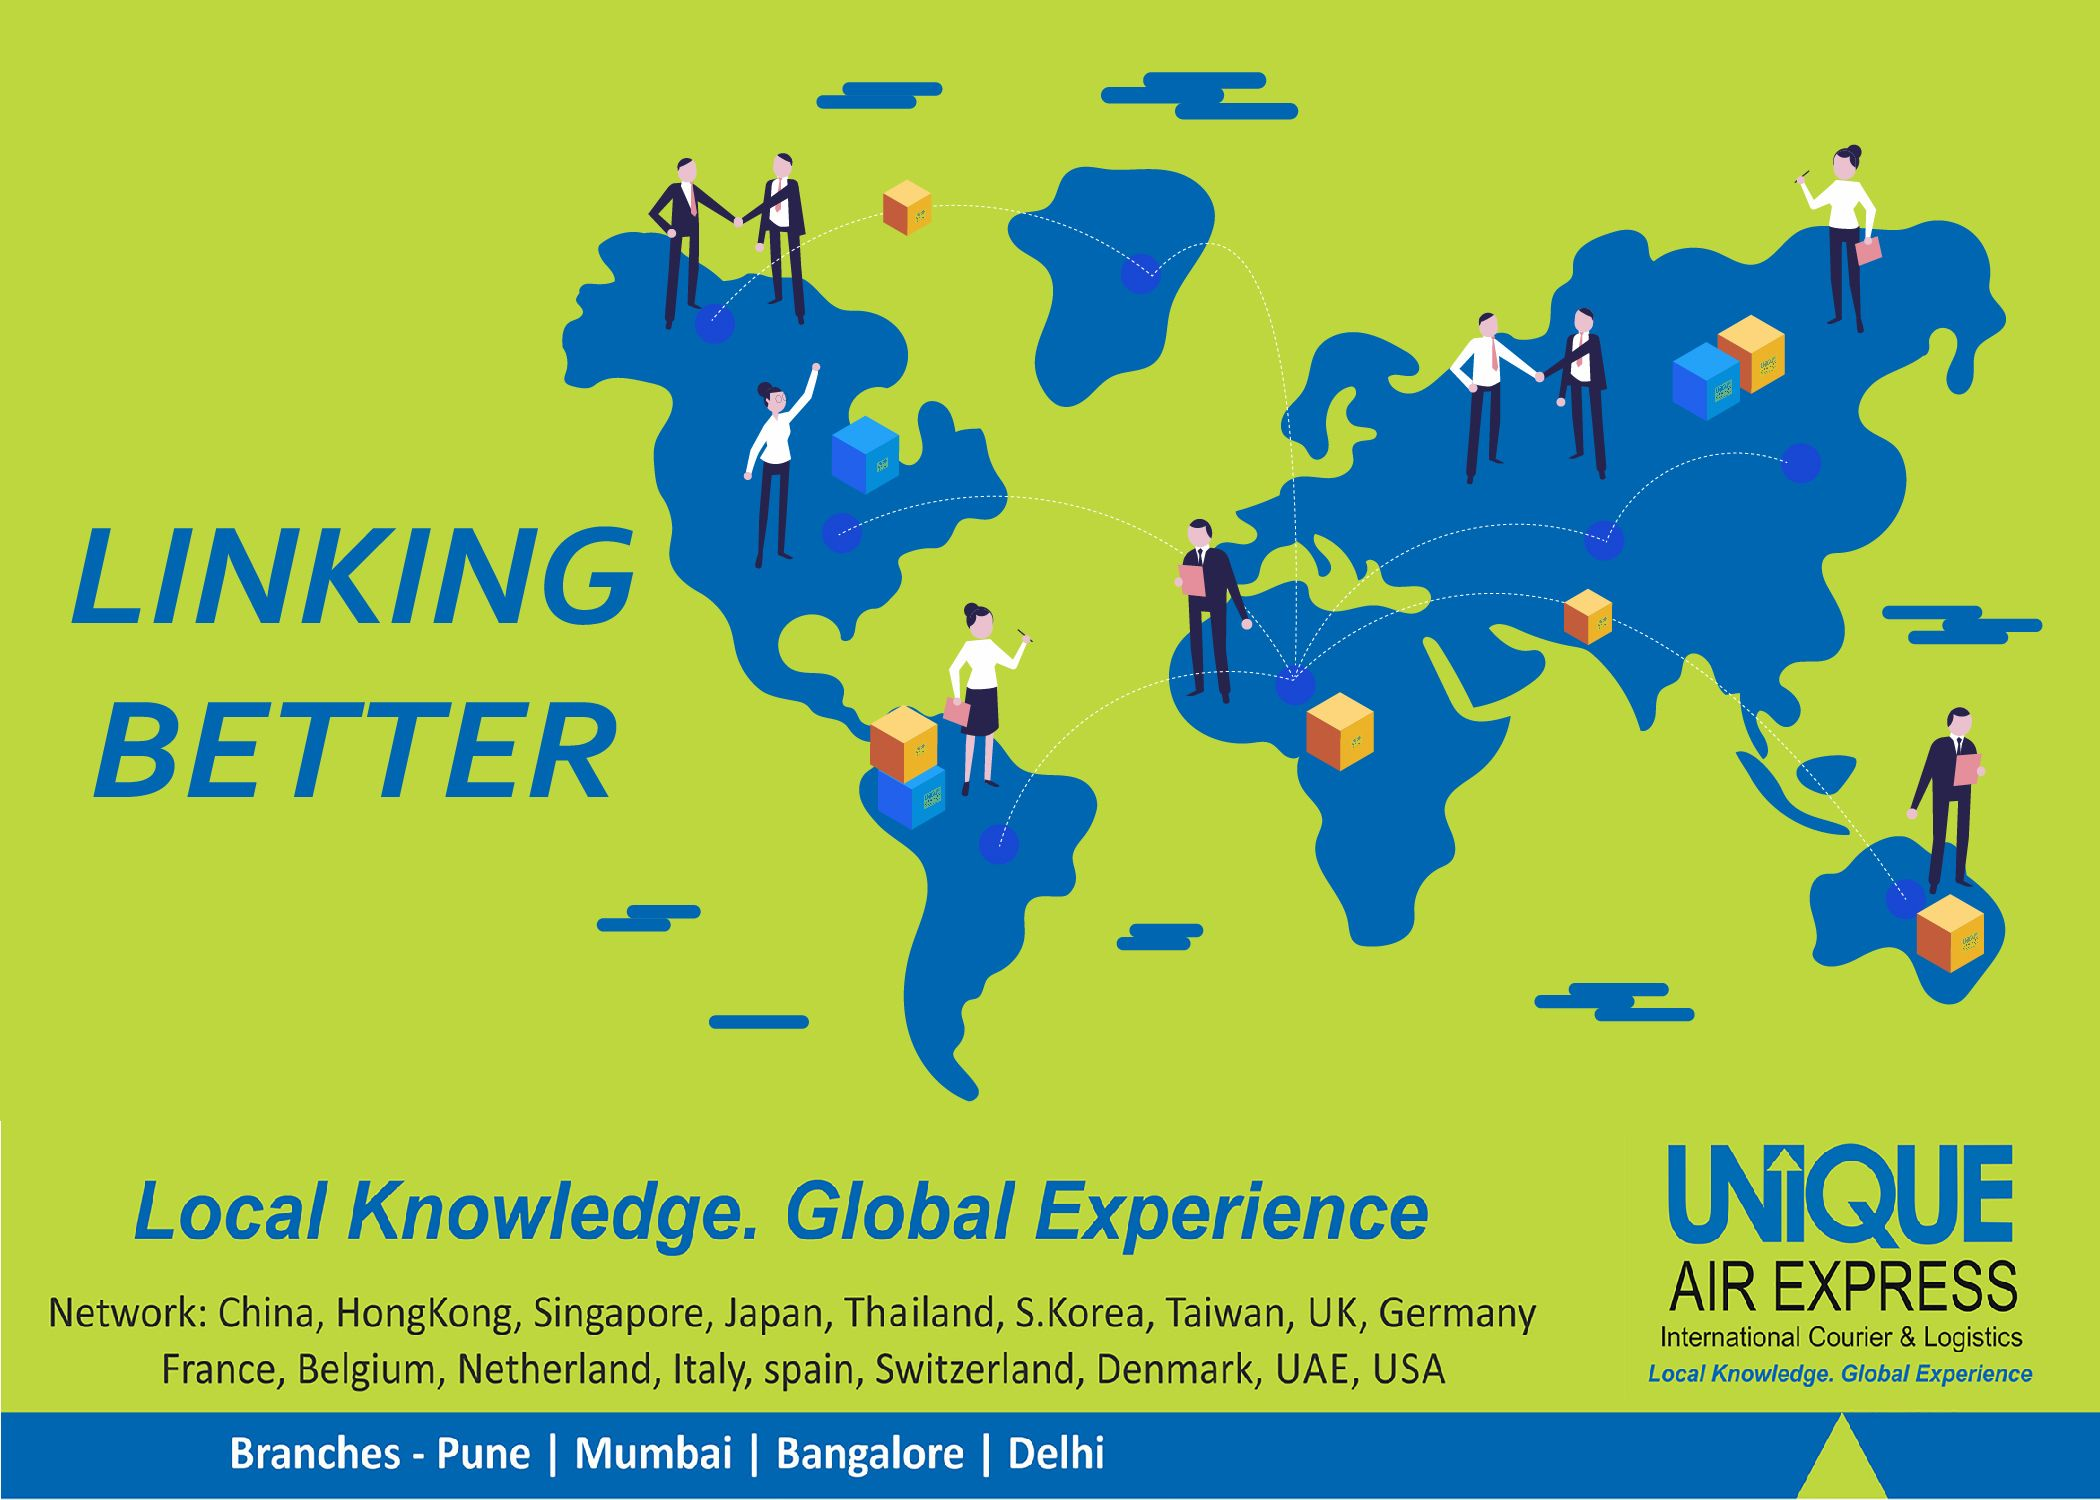 Linking Better! We link the world providing best services